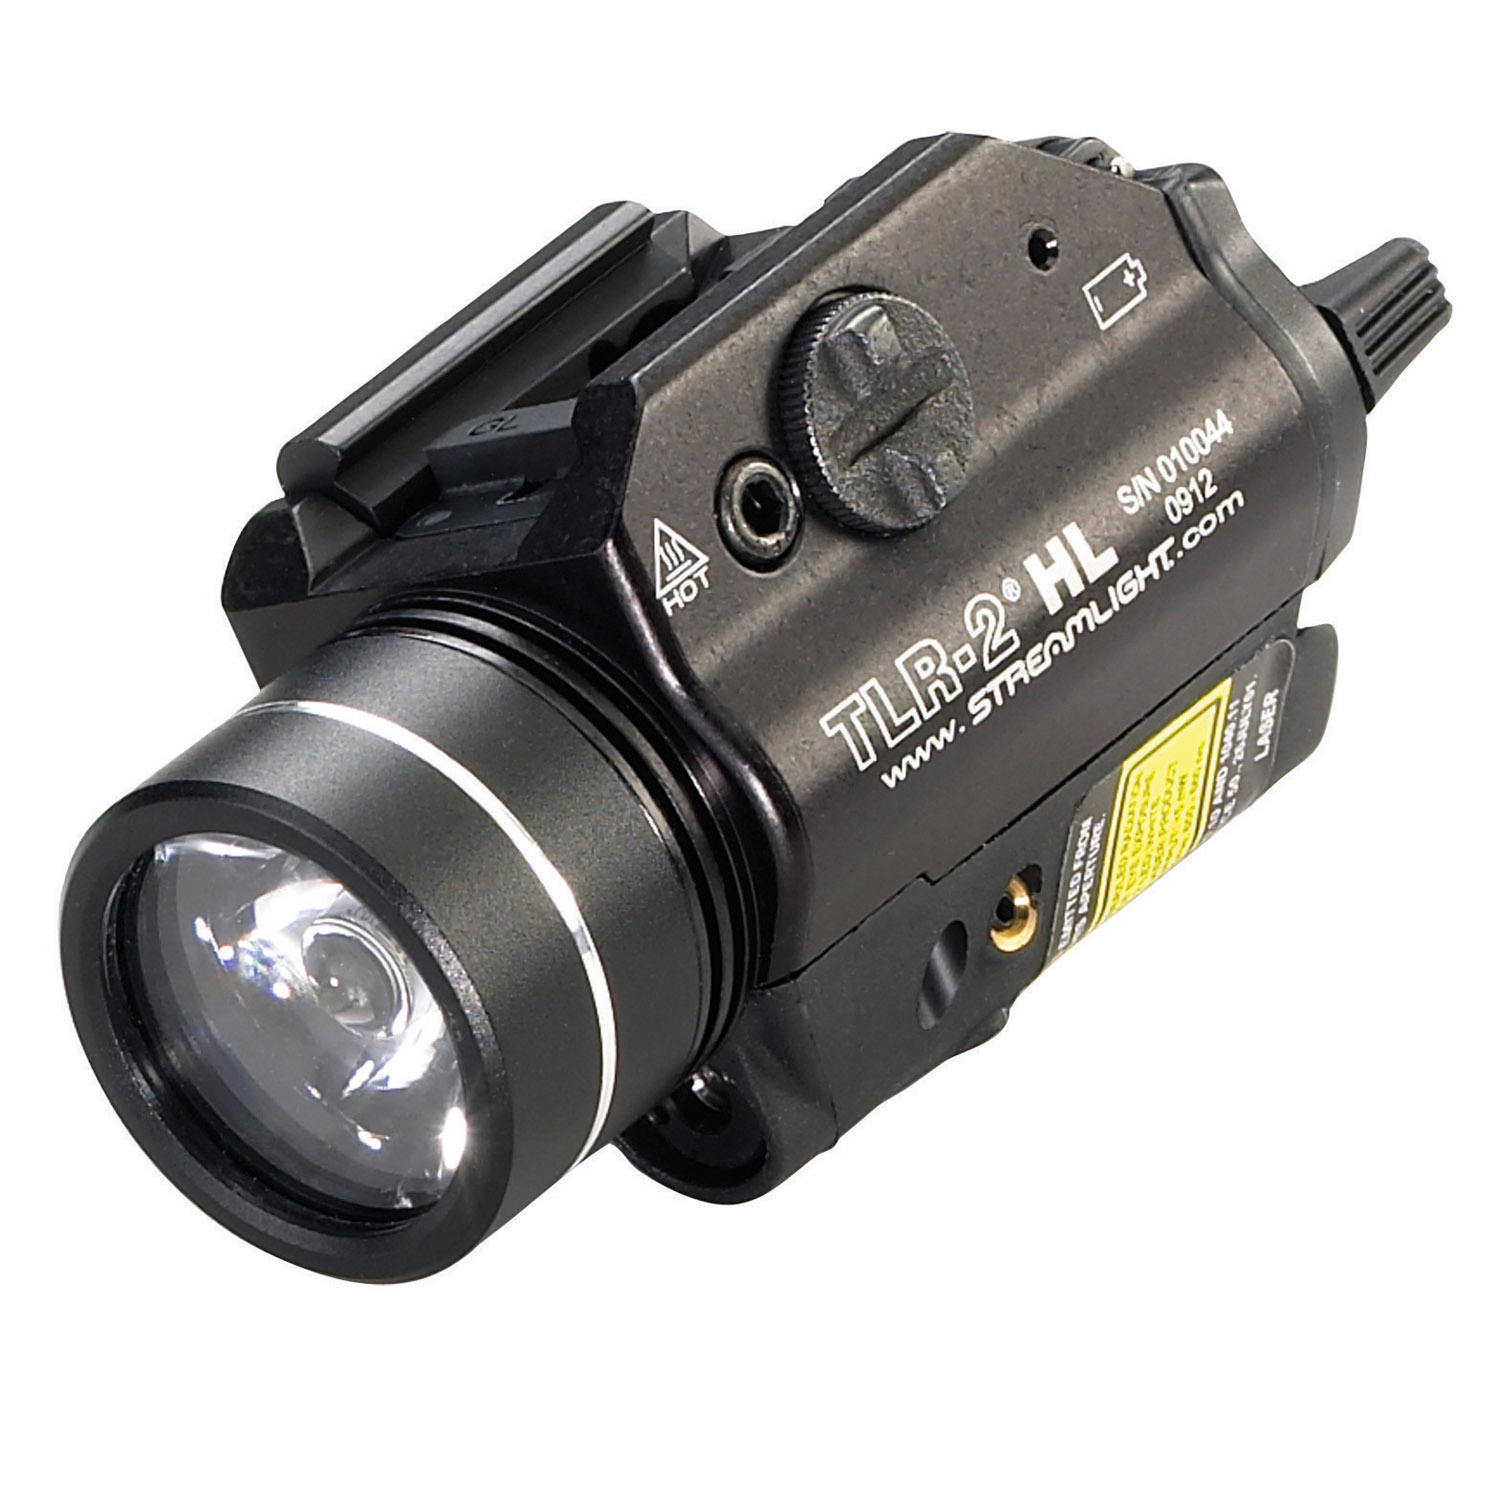 Streamlight TLR 2 HL Tactical Gun Mount Weapon Light with La